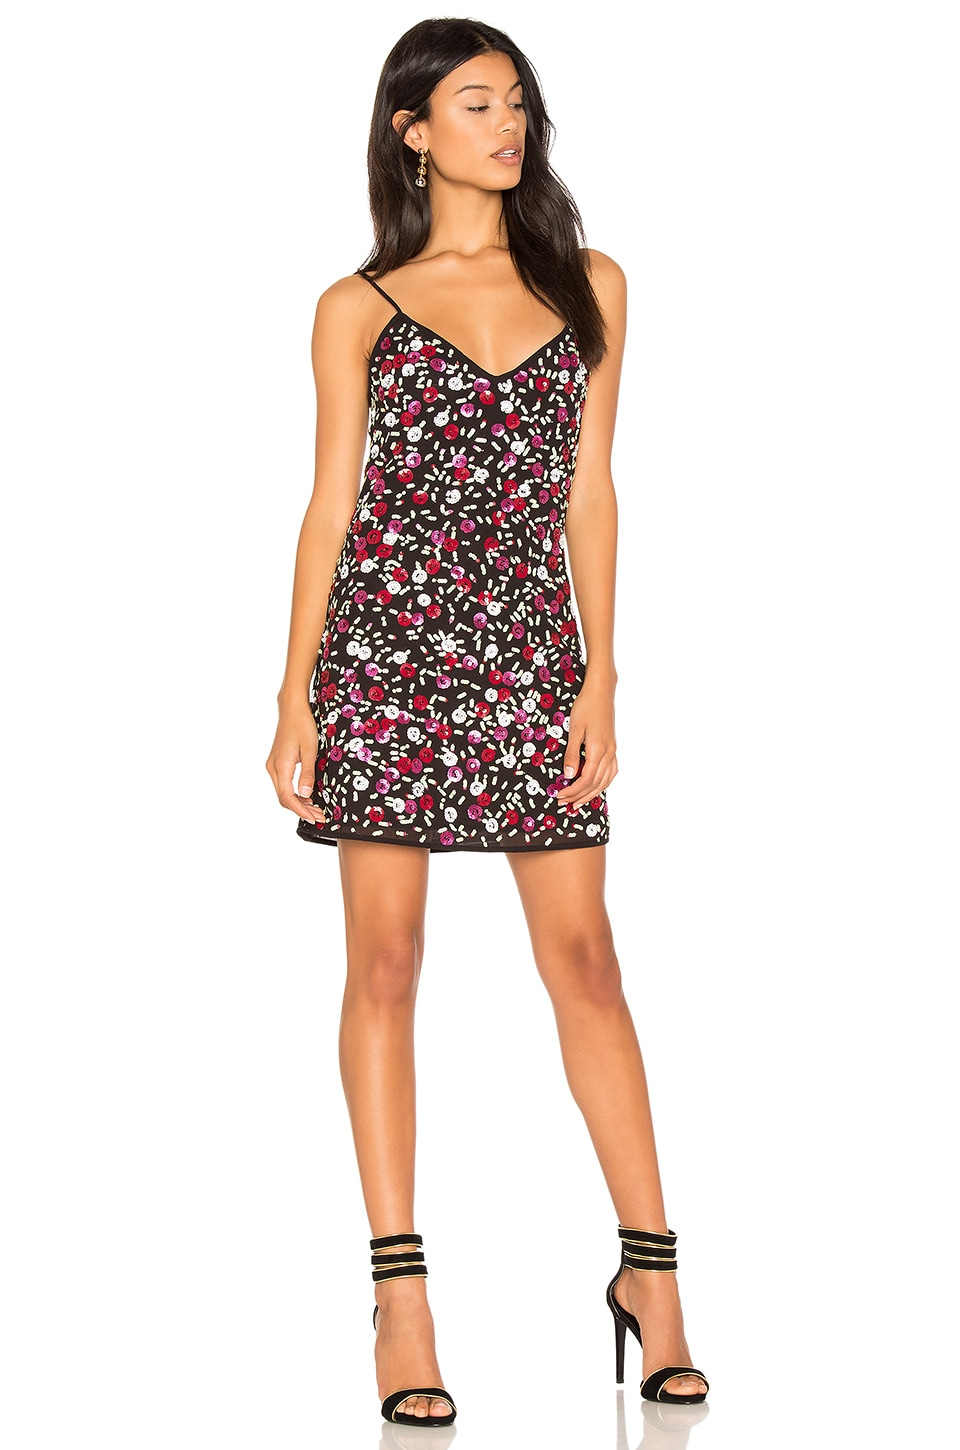 LPA Dress 63 in Floral Sequin